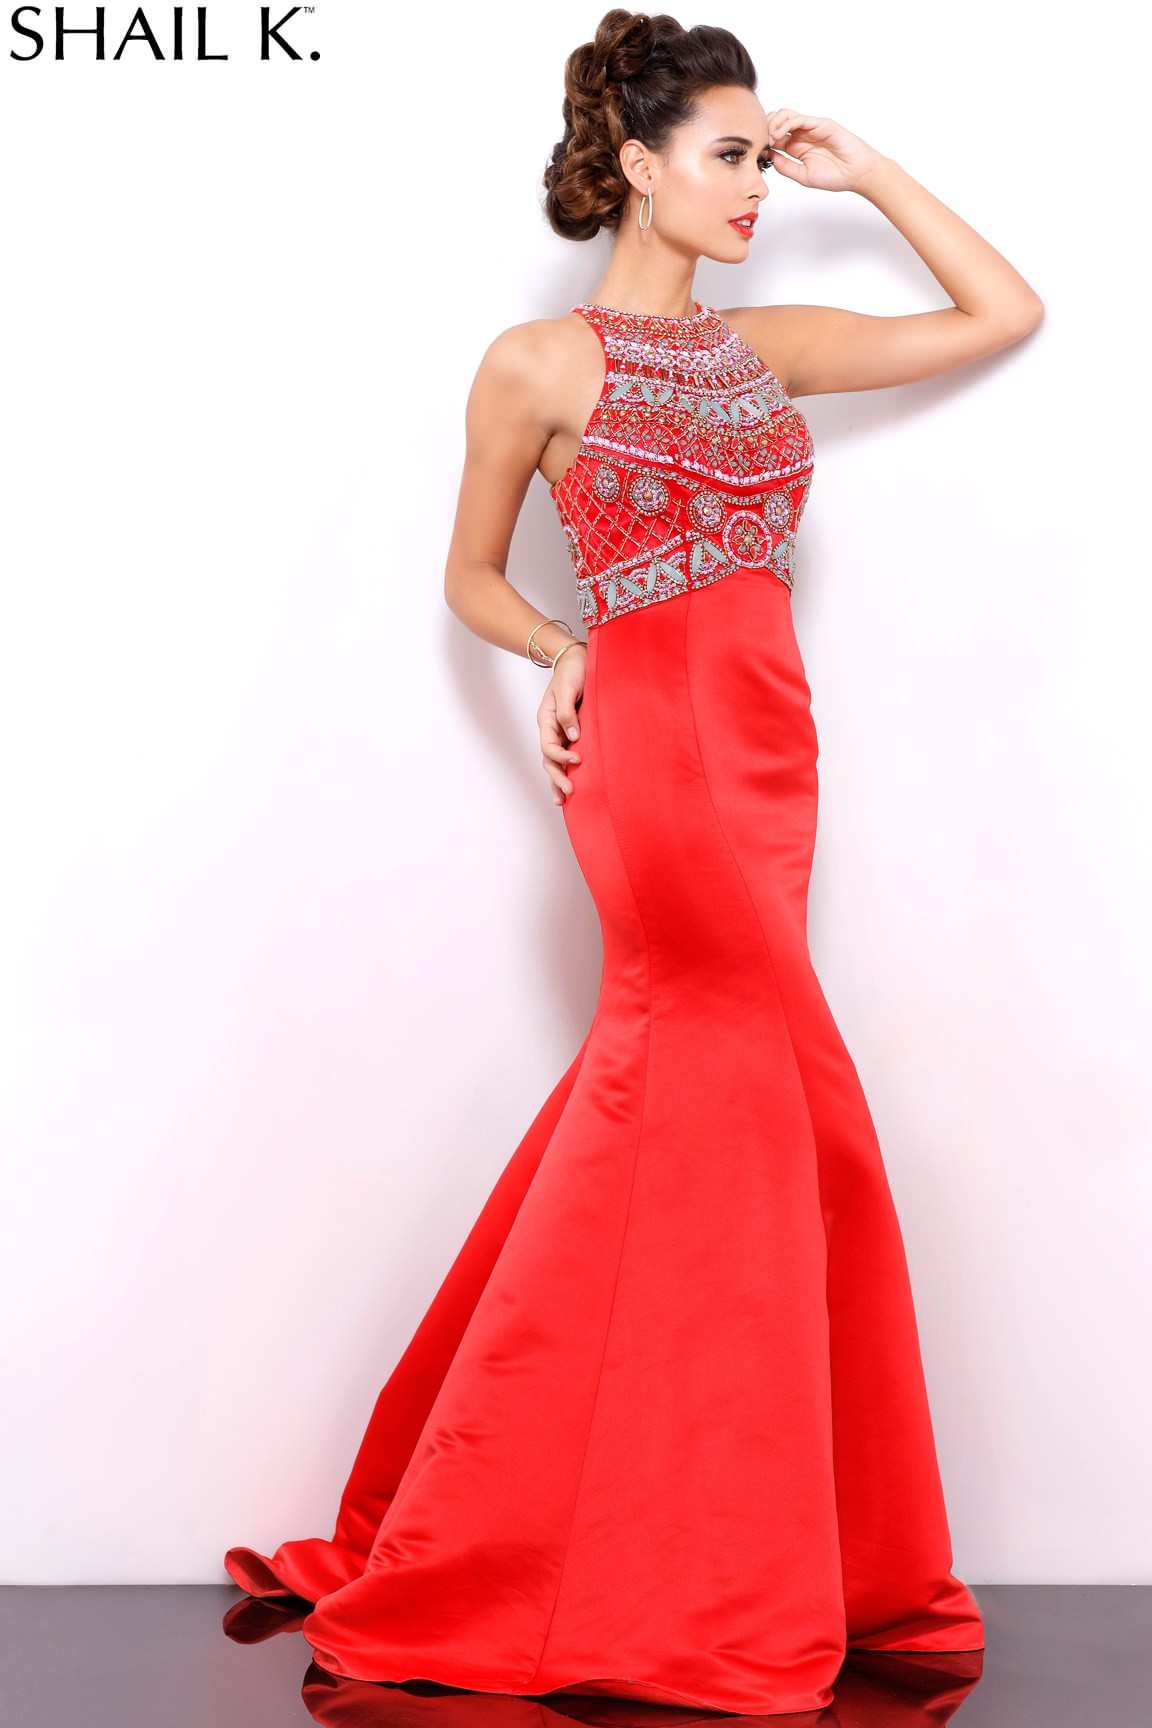 Prom Dress Donation Greensburg Pa - Holiday Dresses